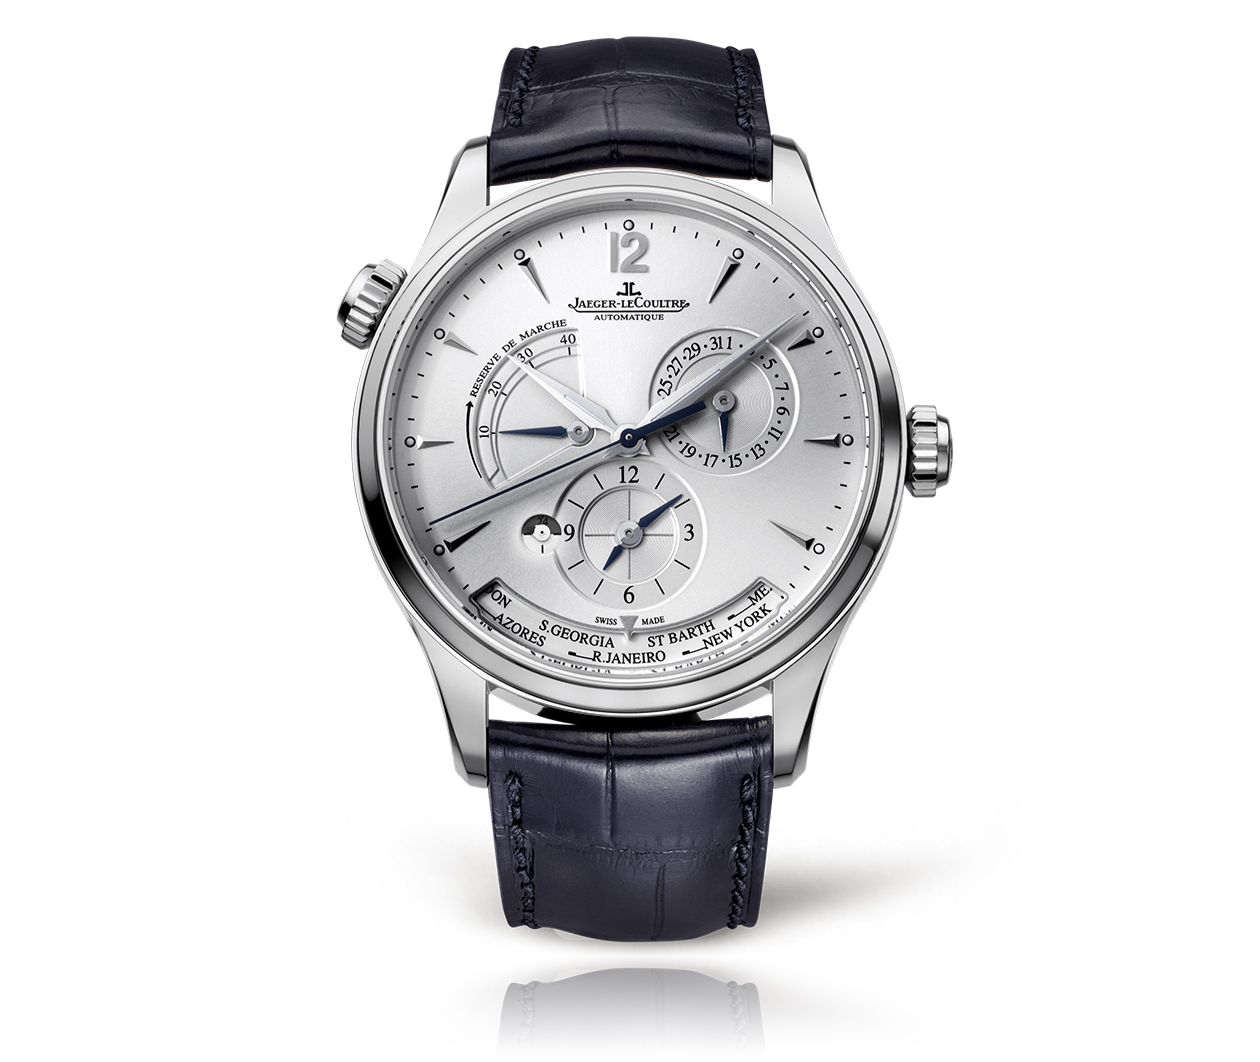 JaegerLeCoultre Master ControlGeographic 1428421 Carousel 1 FINAL